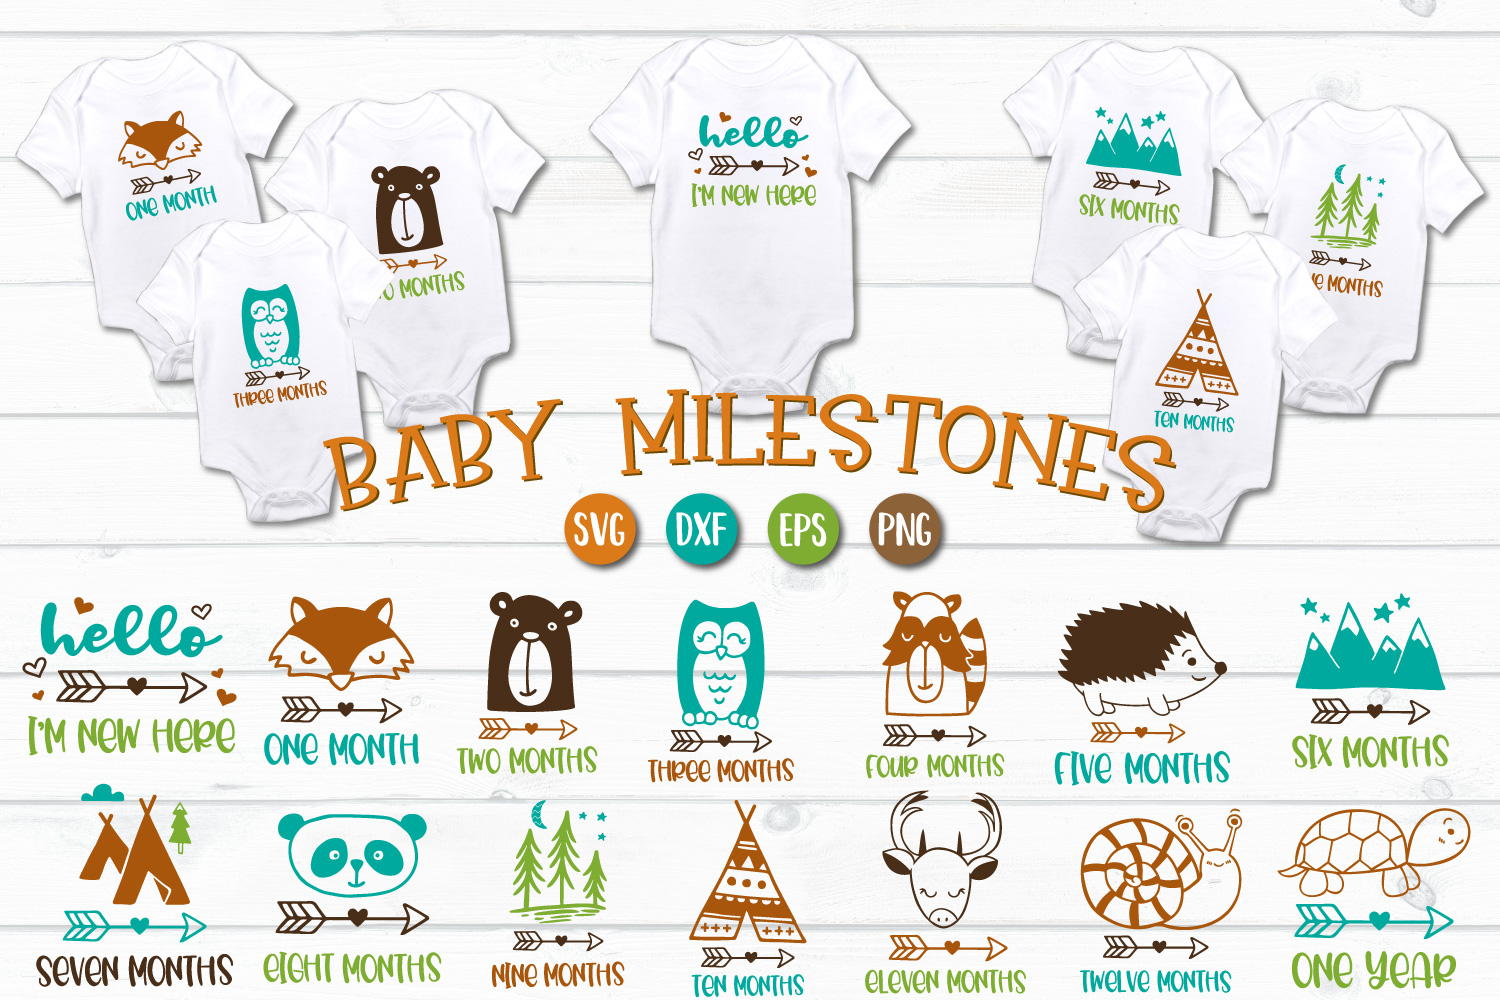 Baby Milestones - SVG, EPS, PNG, EPS example image 1